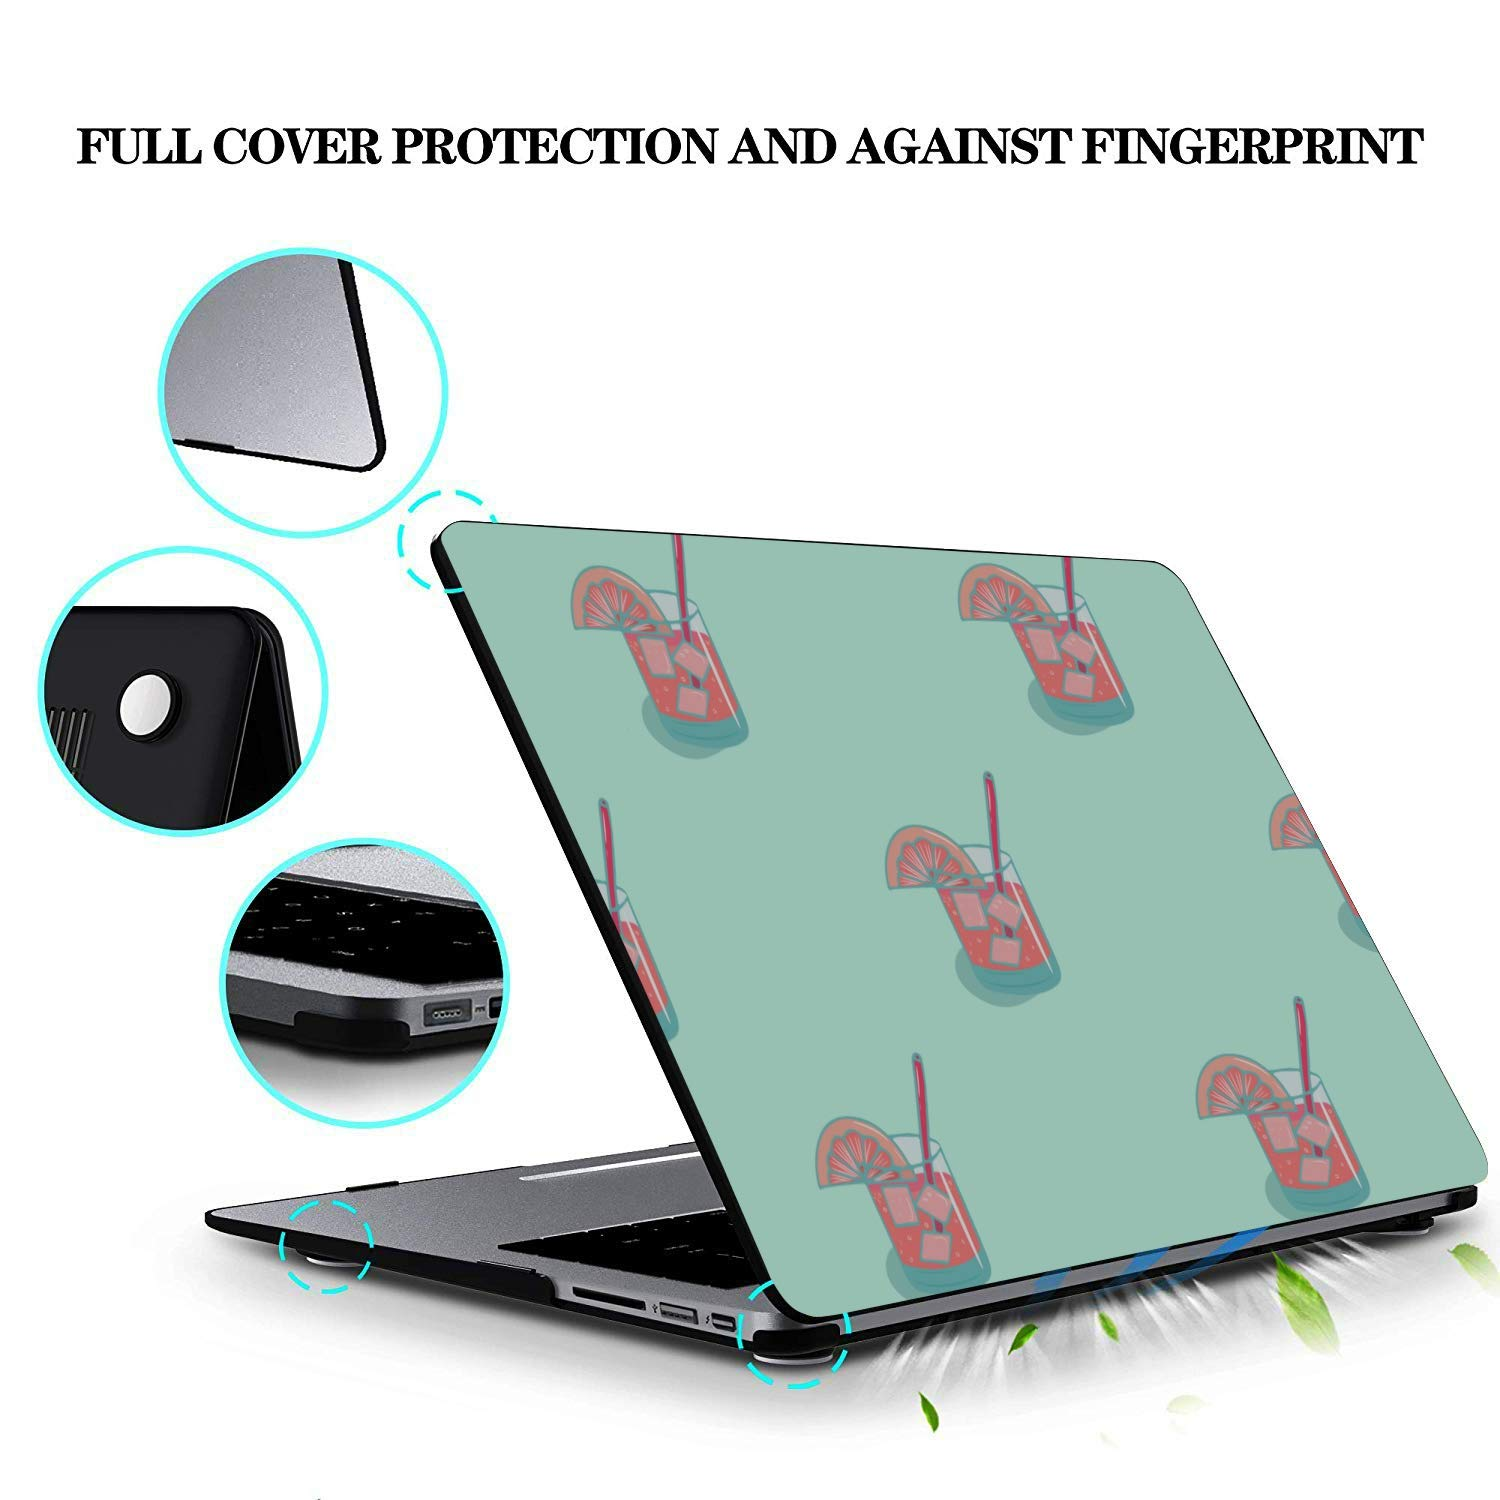 Laptop 13 Inch Case Summer Sweet Cool Watermelon Juice Plastic Hard Shell Compatible Mac Air 11 Pro 13 15 Laptop Protective Case Protection for MacBook 2016-2019 Version